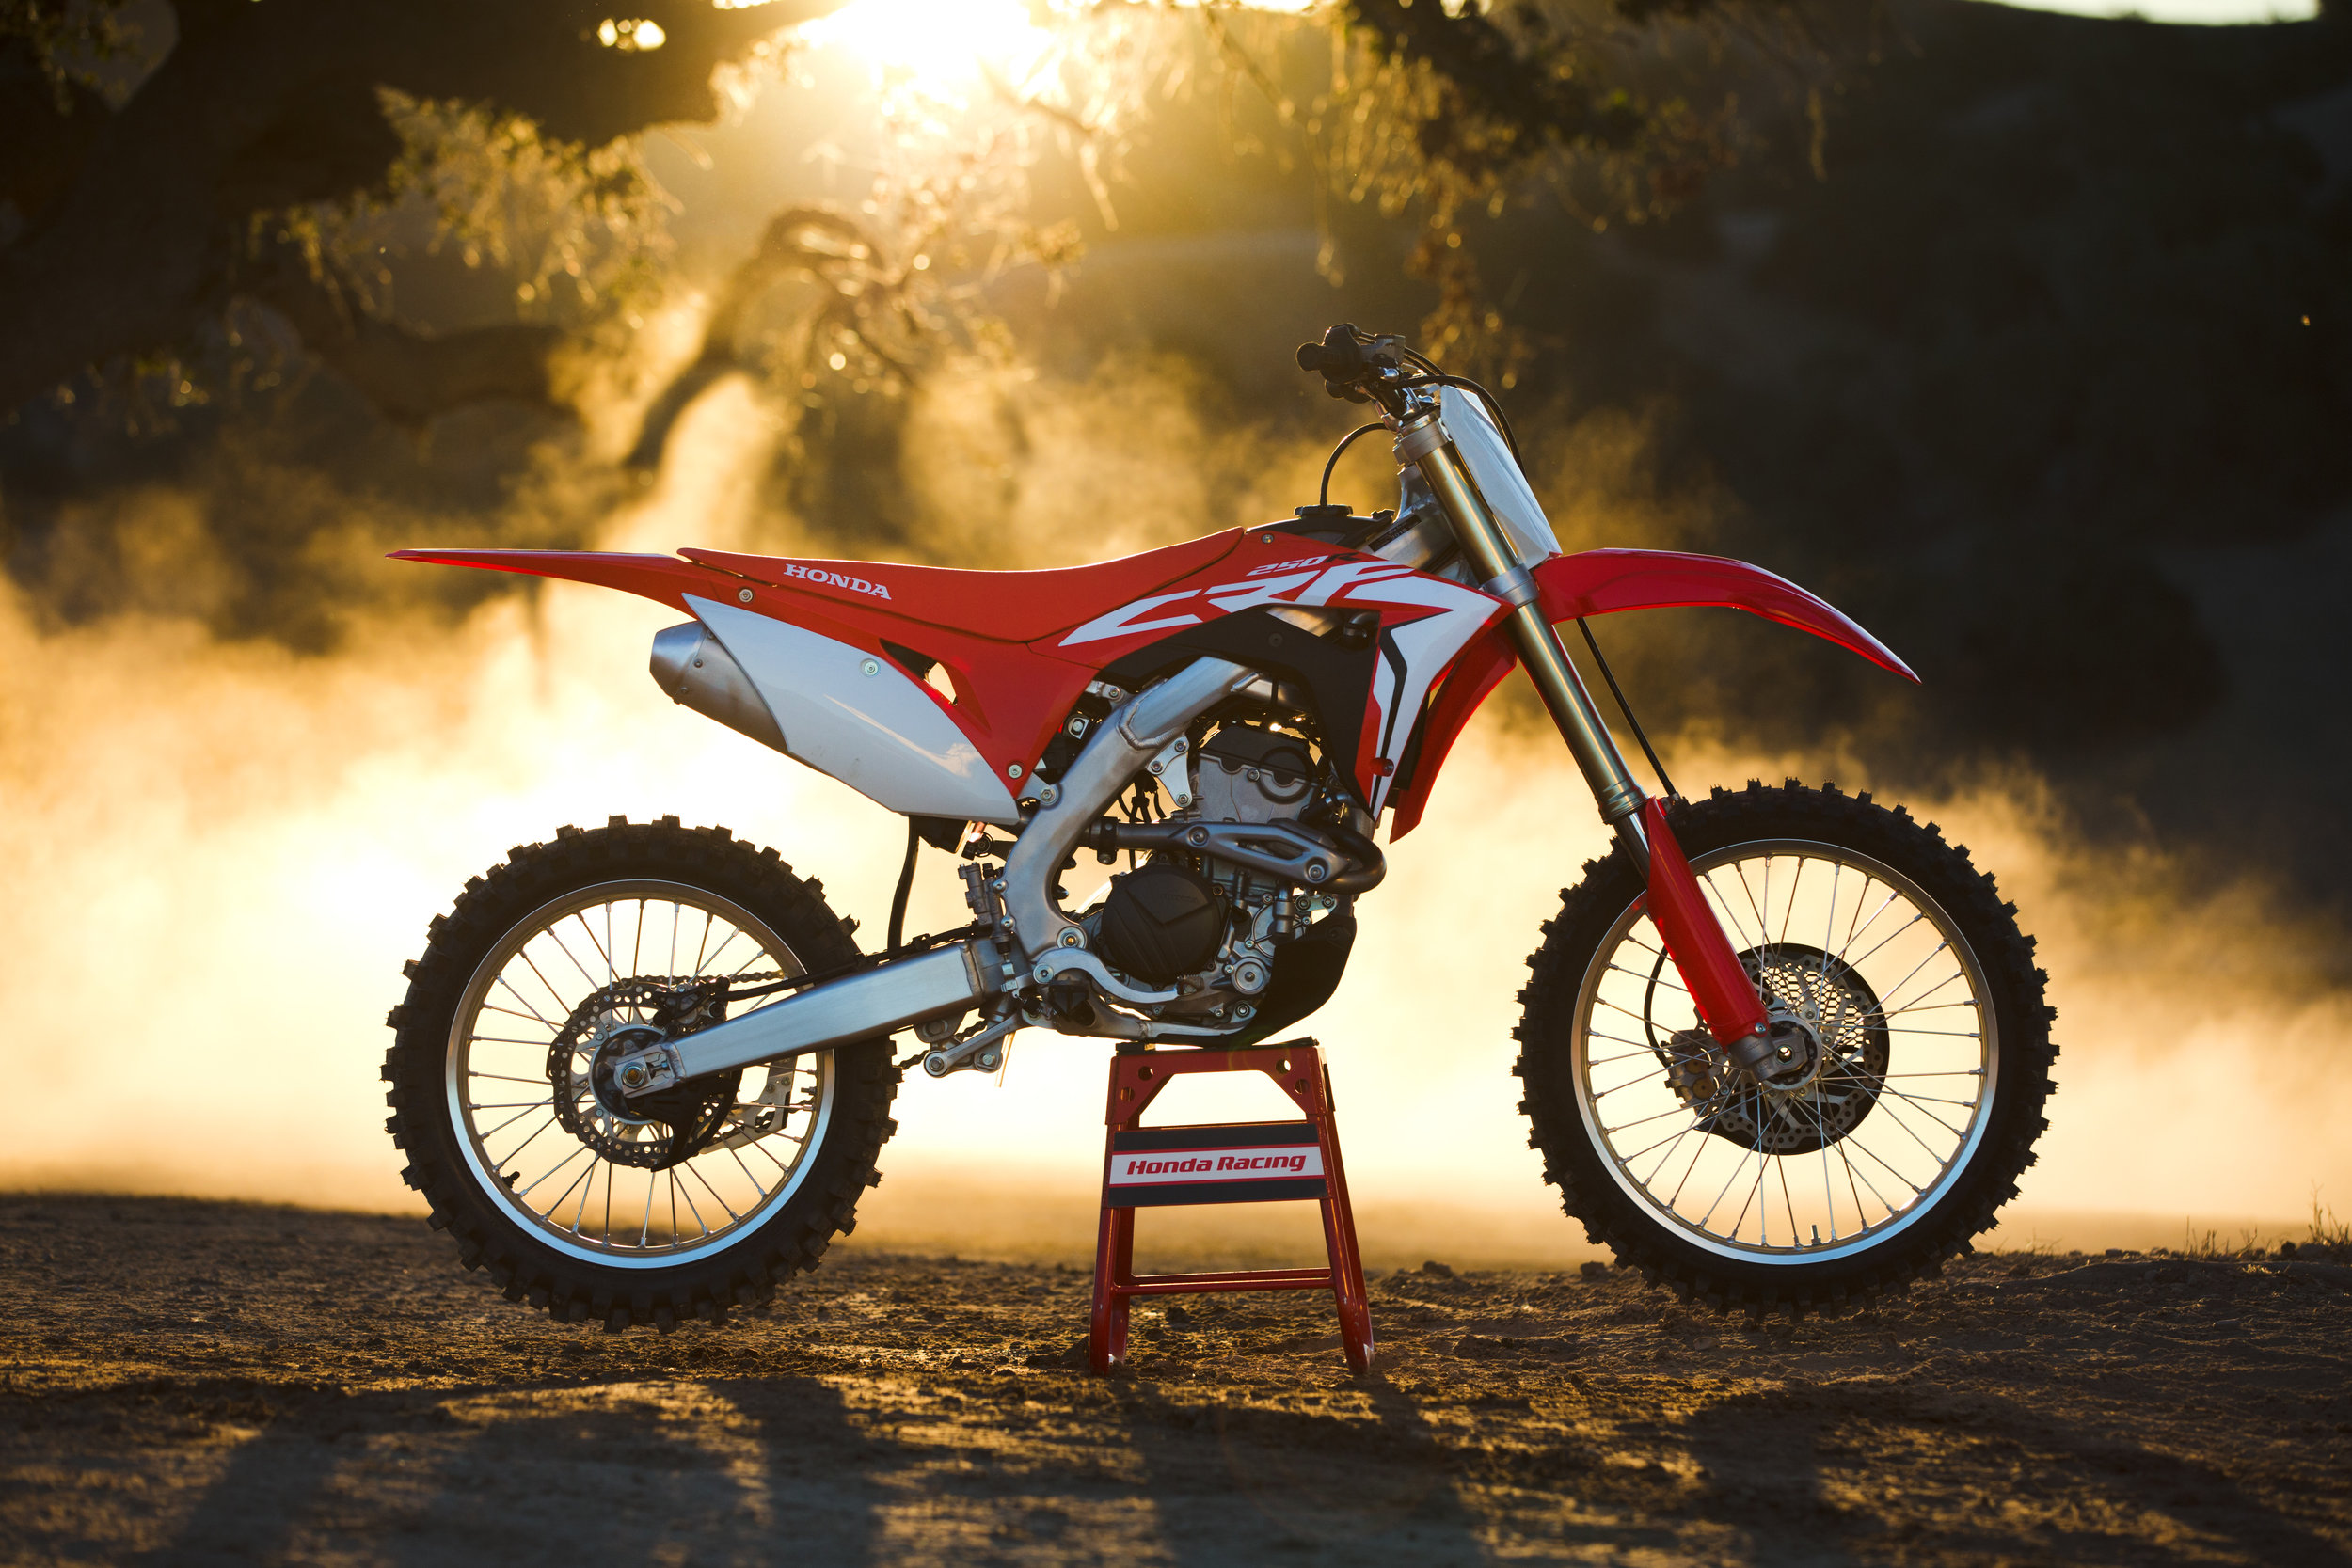 With Jonnum Media's help, Honda carried out a three-phase launch of one of its most important motocross launches in years.  Image:   HighRev Photography